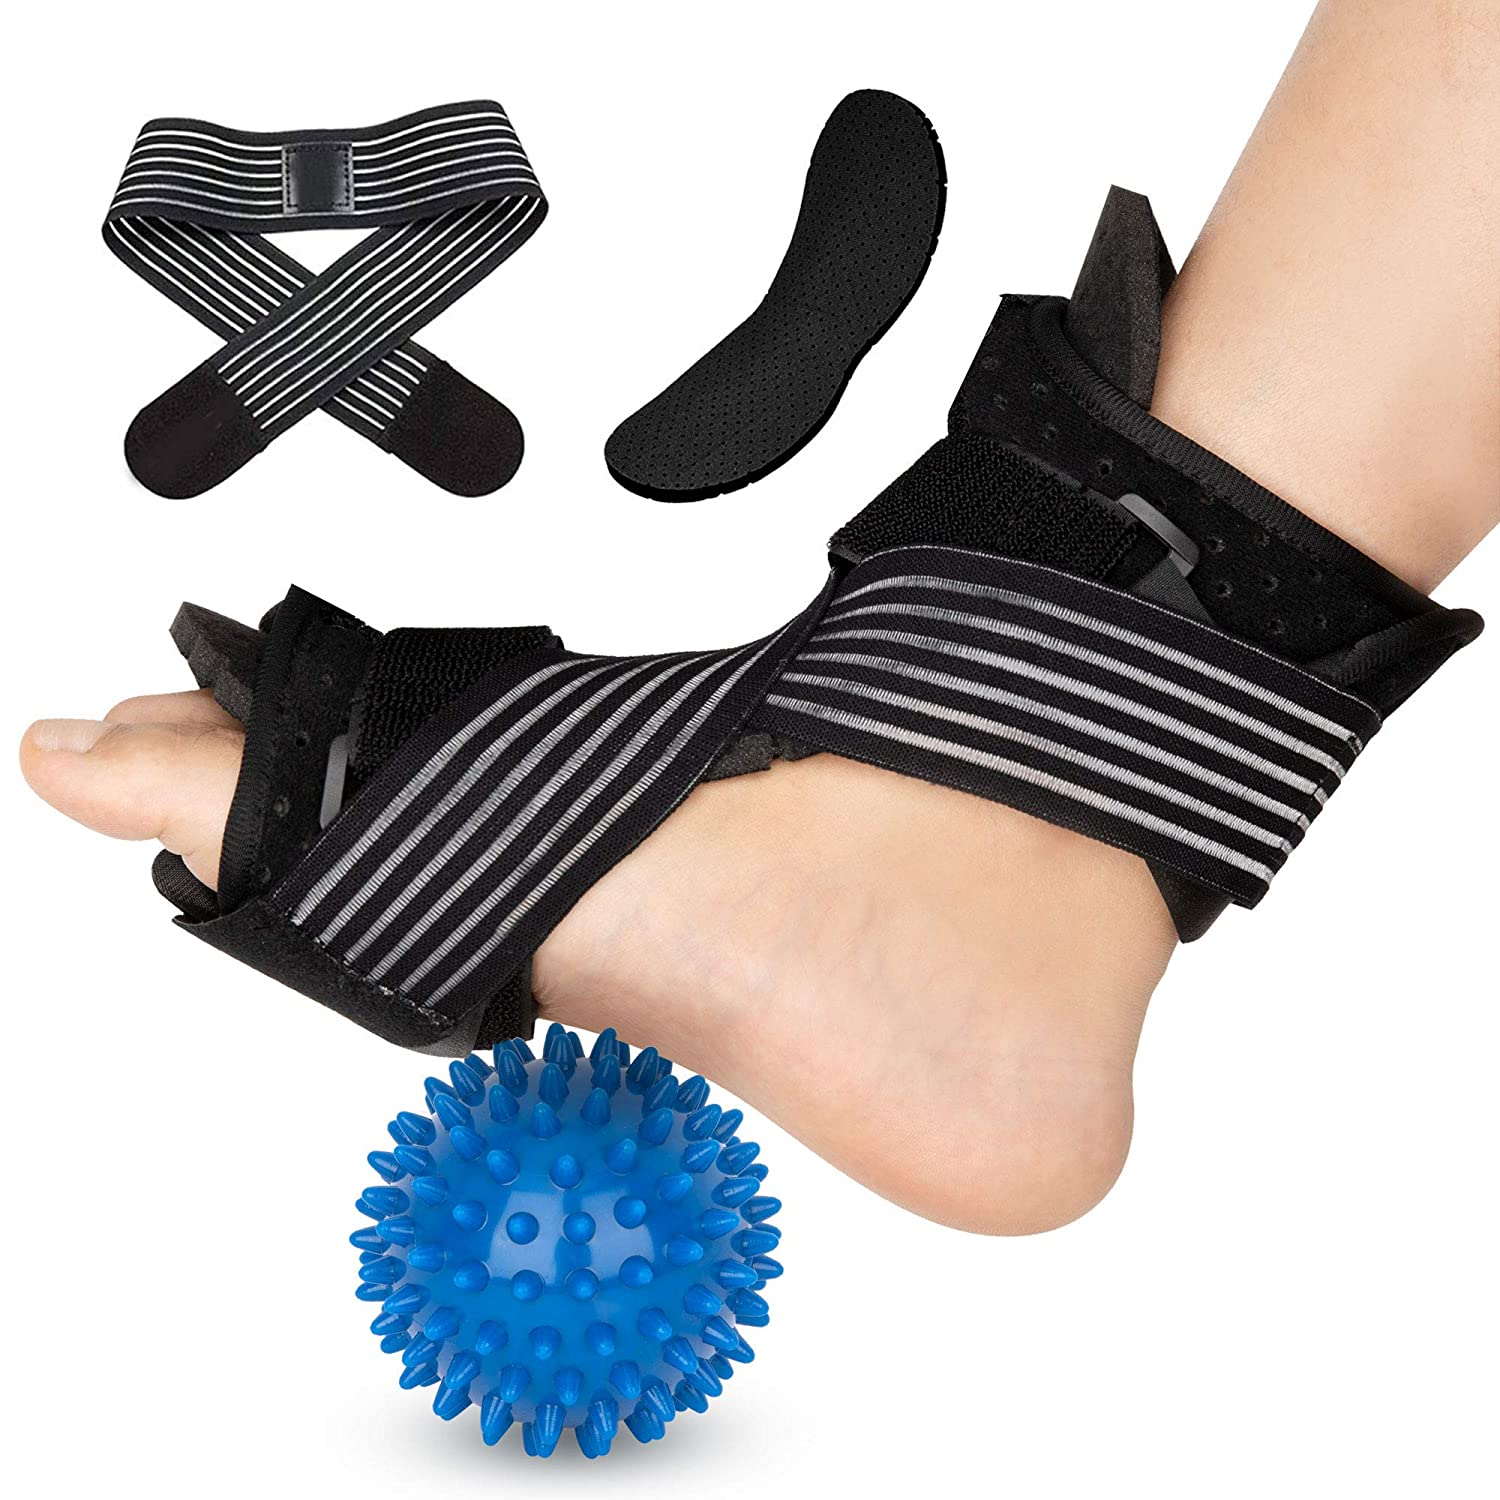 Plantar Fasciitis Splint Ad 70% OFF Outlet for Discount is also underway Night